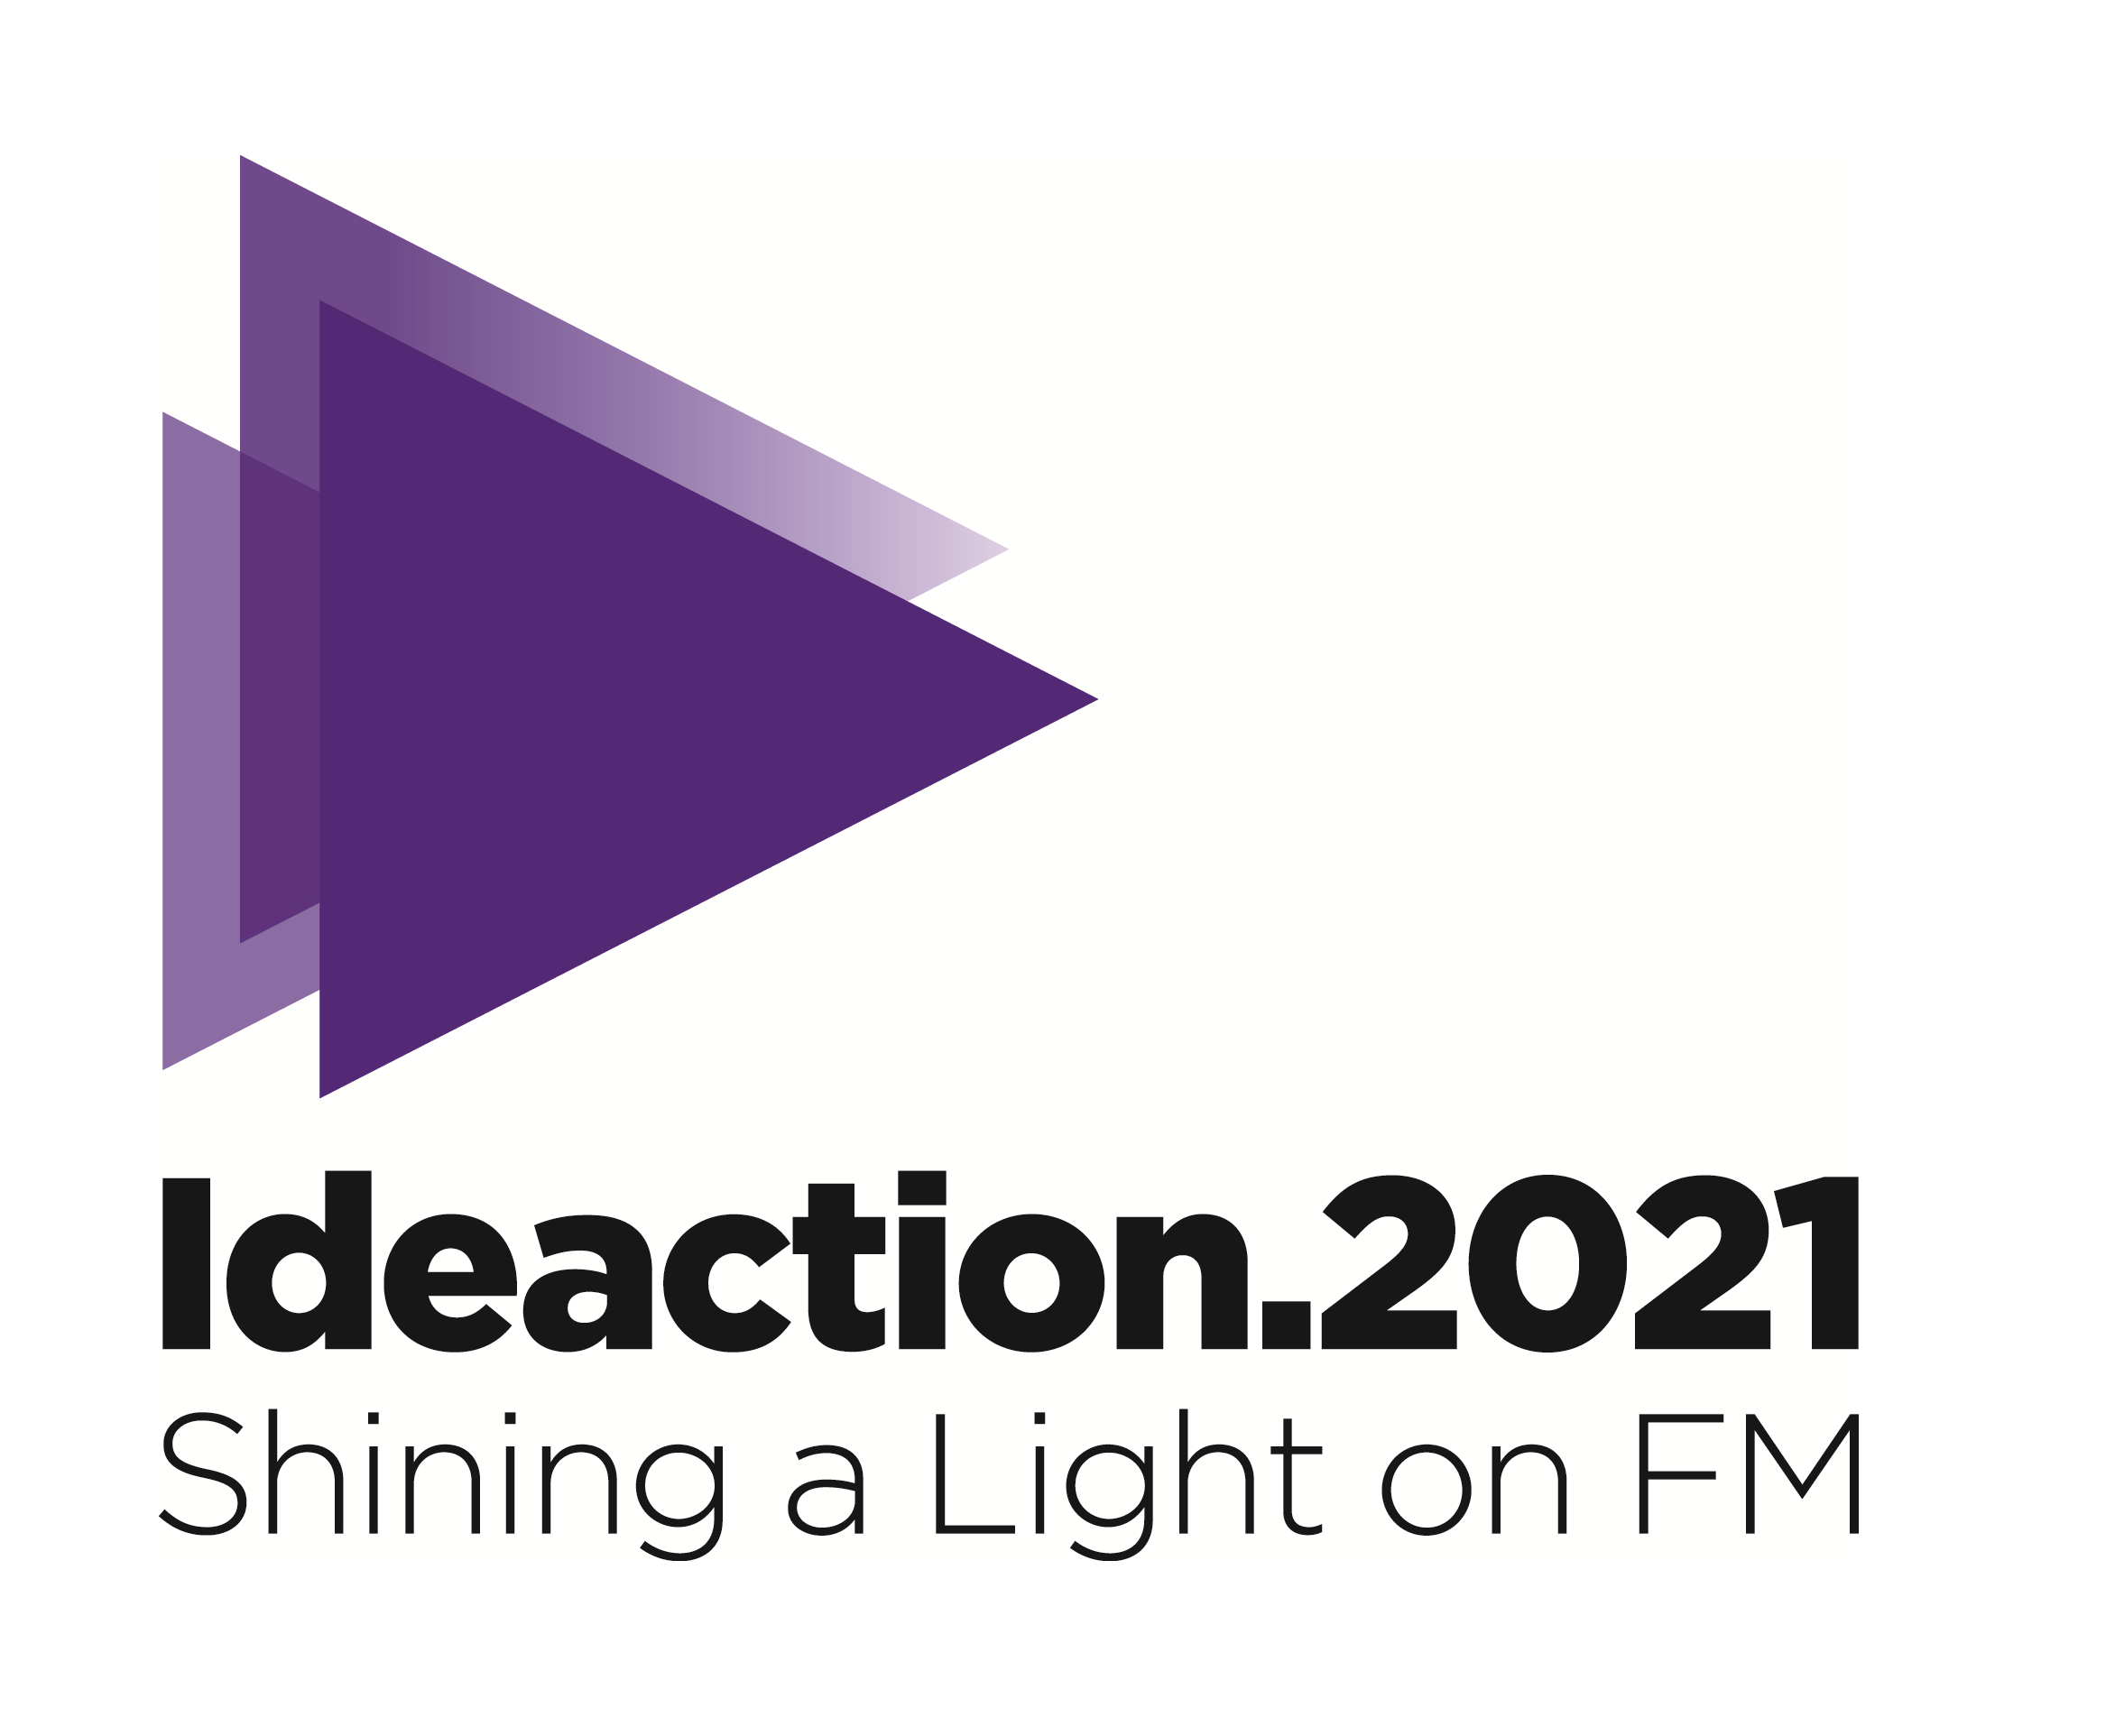 Ideaction.2021 Call for Abstracts Form